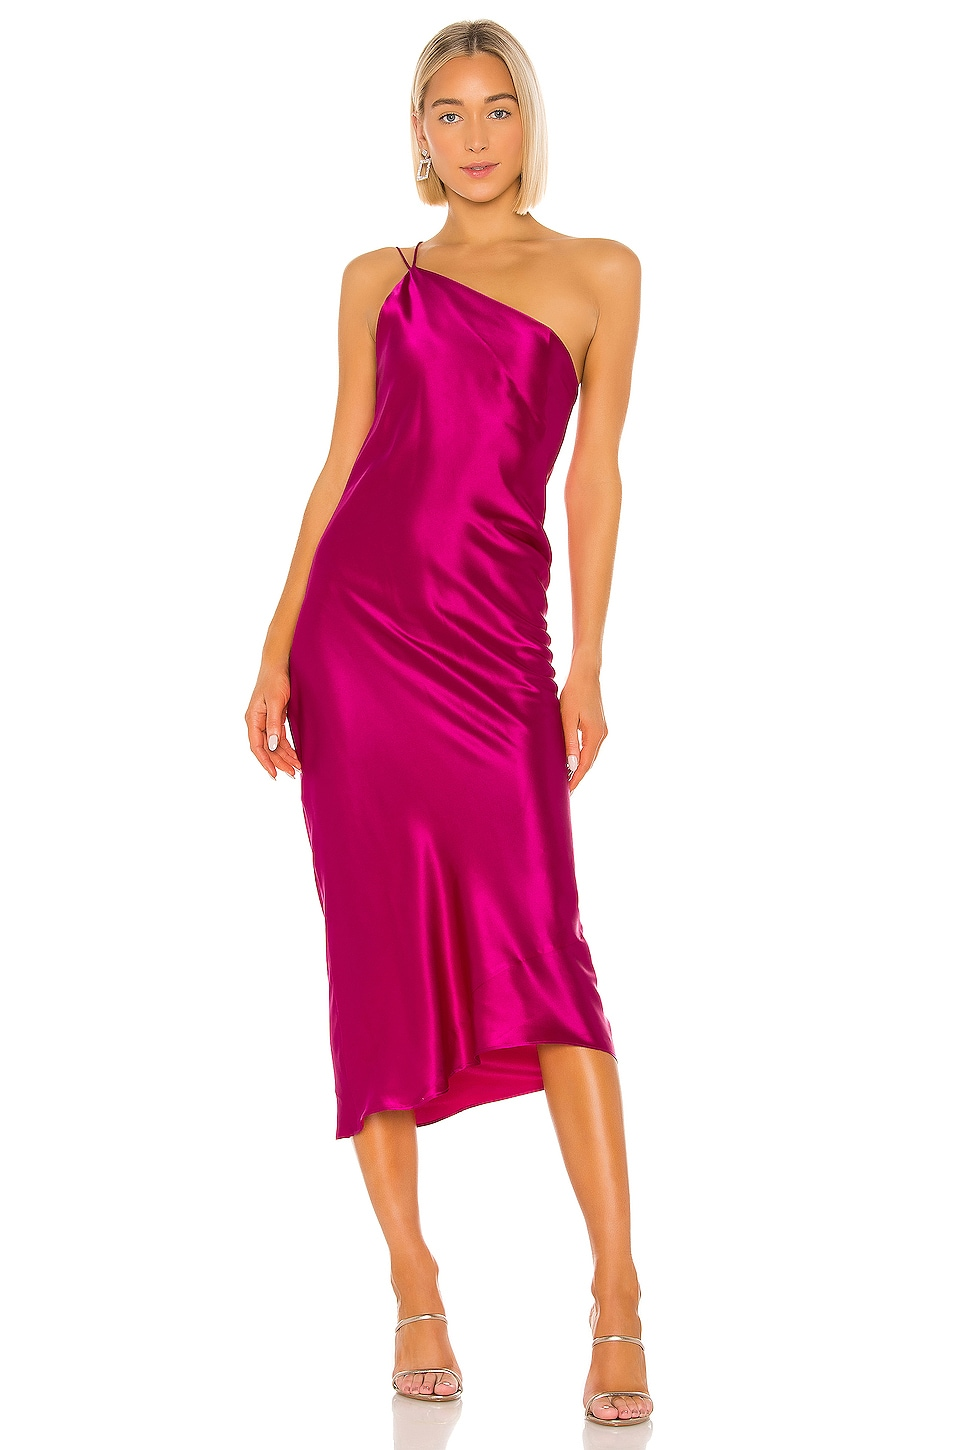 ALIX NYC Quincy Dress in Magenta